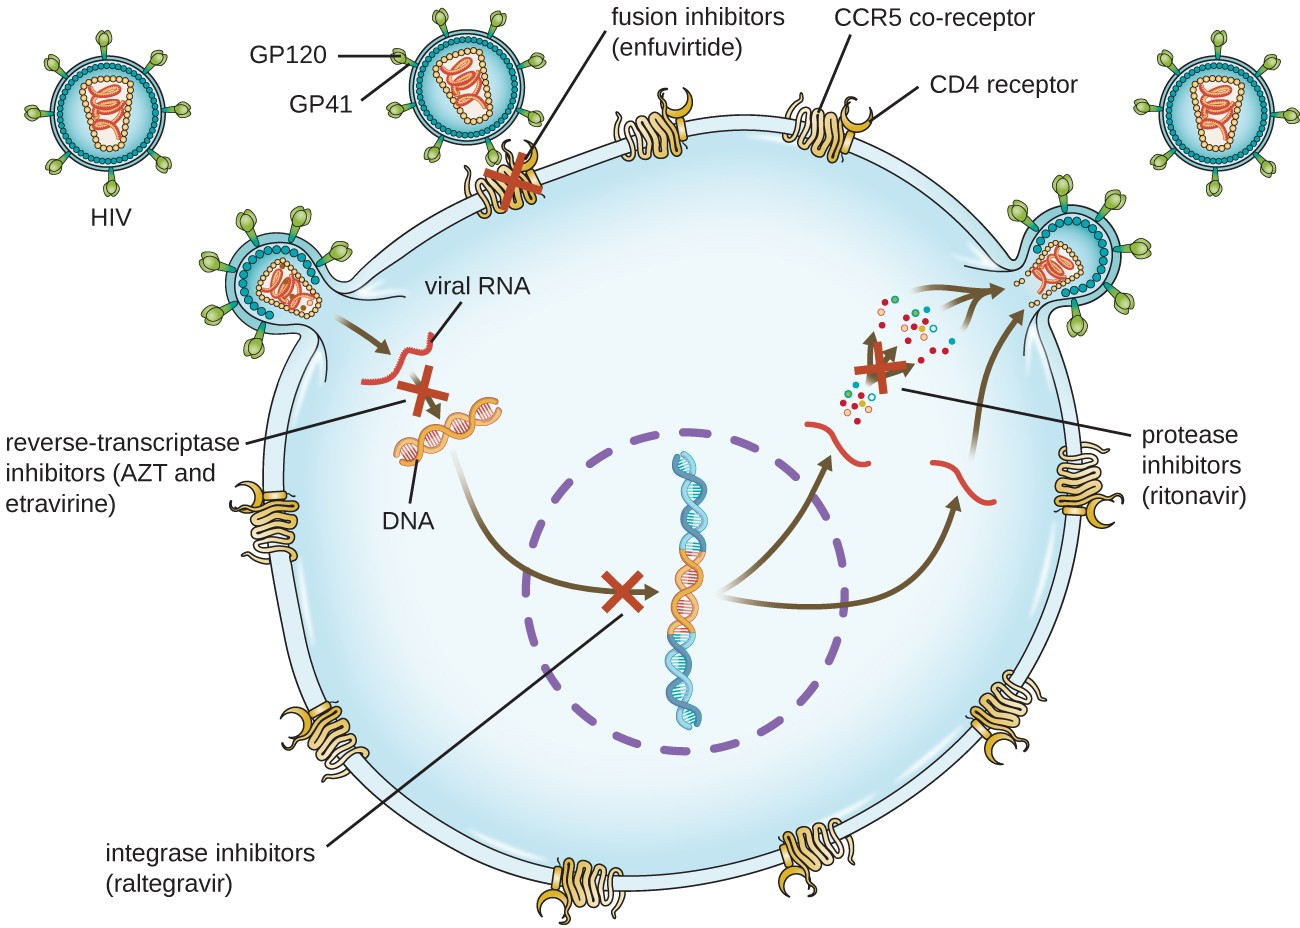 Diagram showing HIV infection and locations where drugs can stop the infection. GP120 and G(42 are proteins that are on the surface of the virus and bind to CD4 receptor and CCR5. Enfuvirtide is a fusion inhibitor that blocks this process. When the virus enters, it produces DNA from RNA, this can be blocked by AZT and etravirine which are reverse-transcriptase inhibitors. Next, the viral DNA integrates into the host DNA. Raltegravir is an integrase inhibitor and blocks this step. Finally the virus is rebuild. Ritonavir is a protease inhibitor and blocks this step.